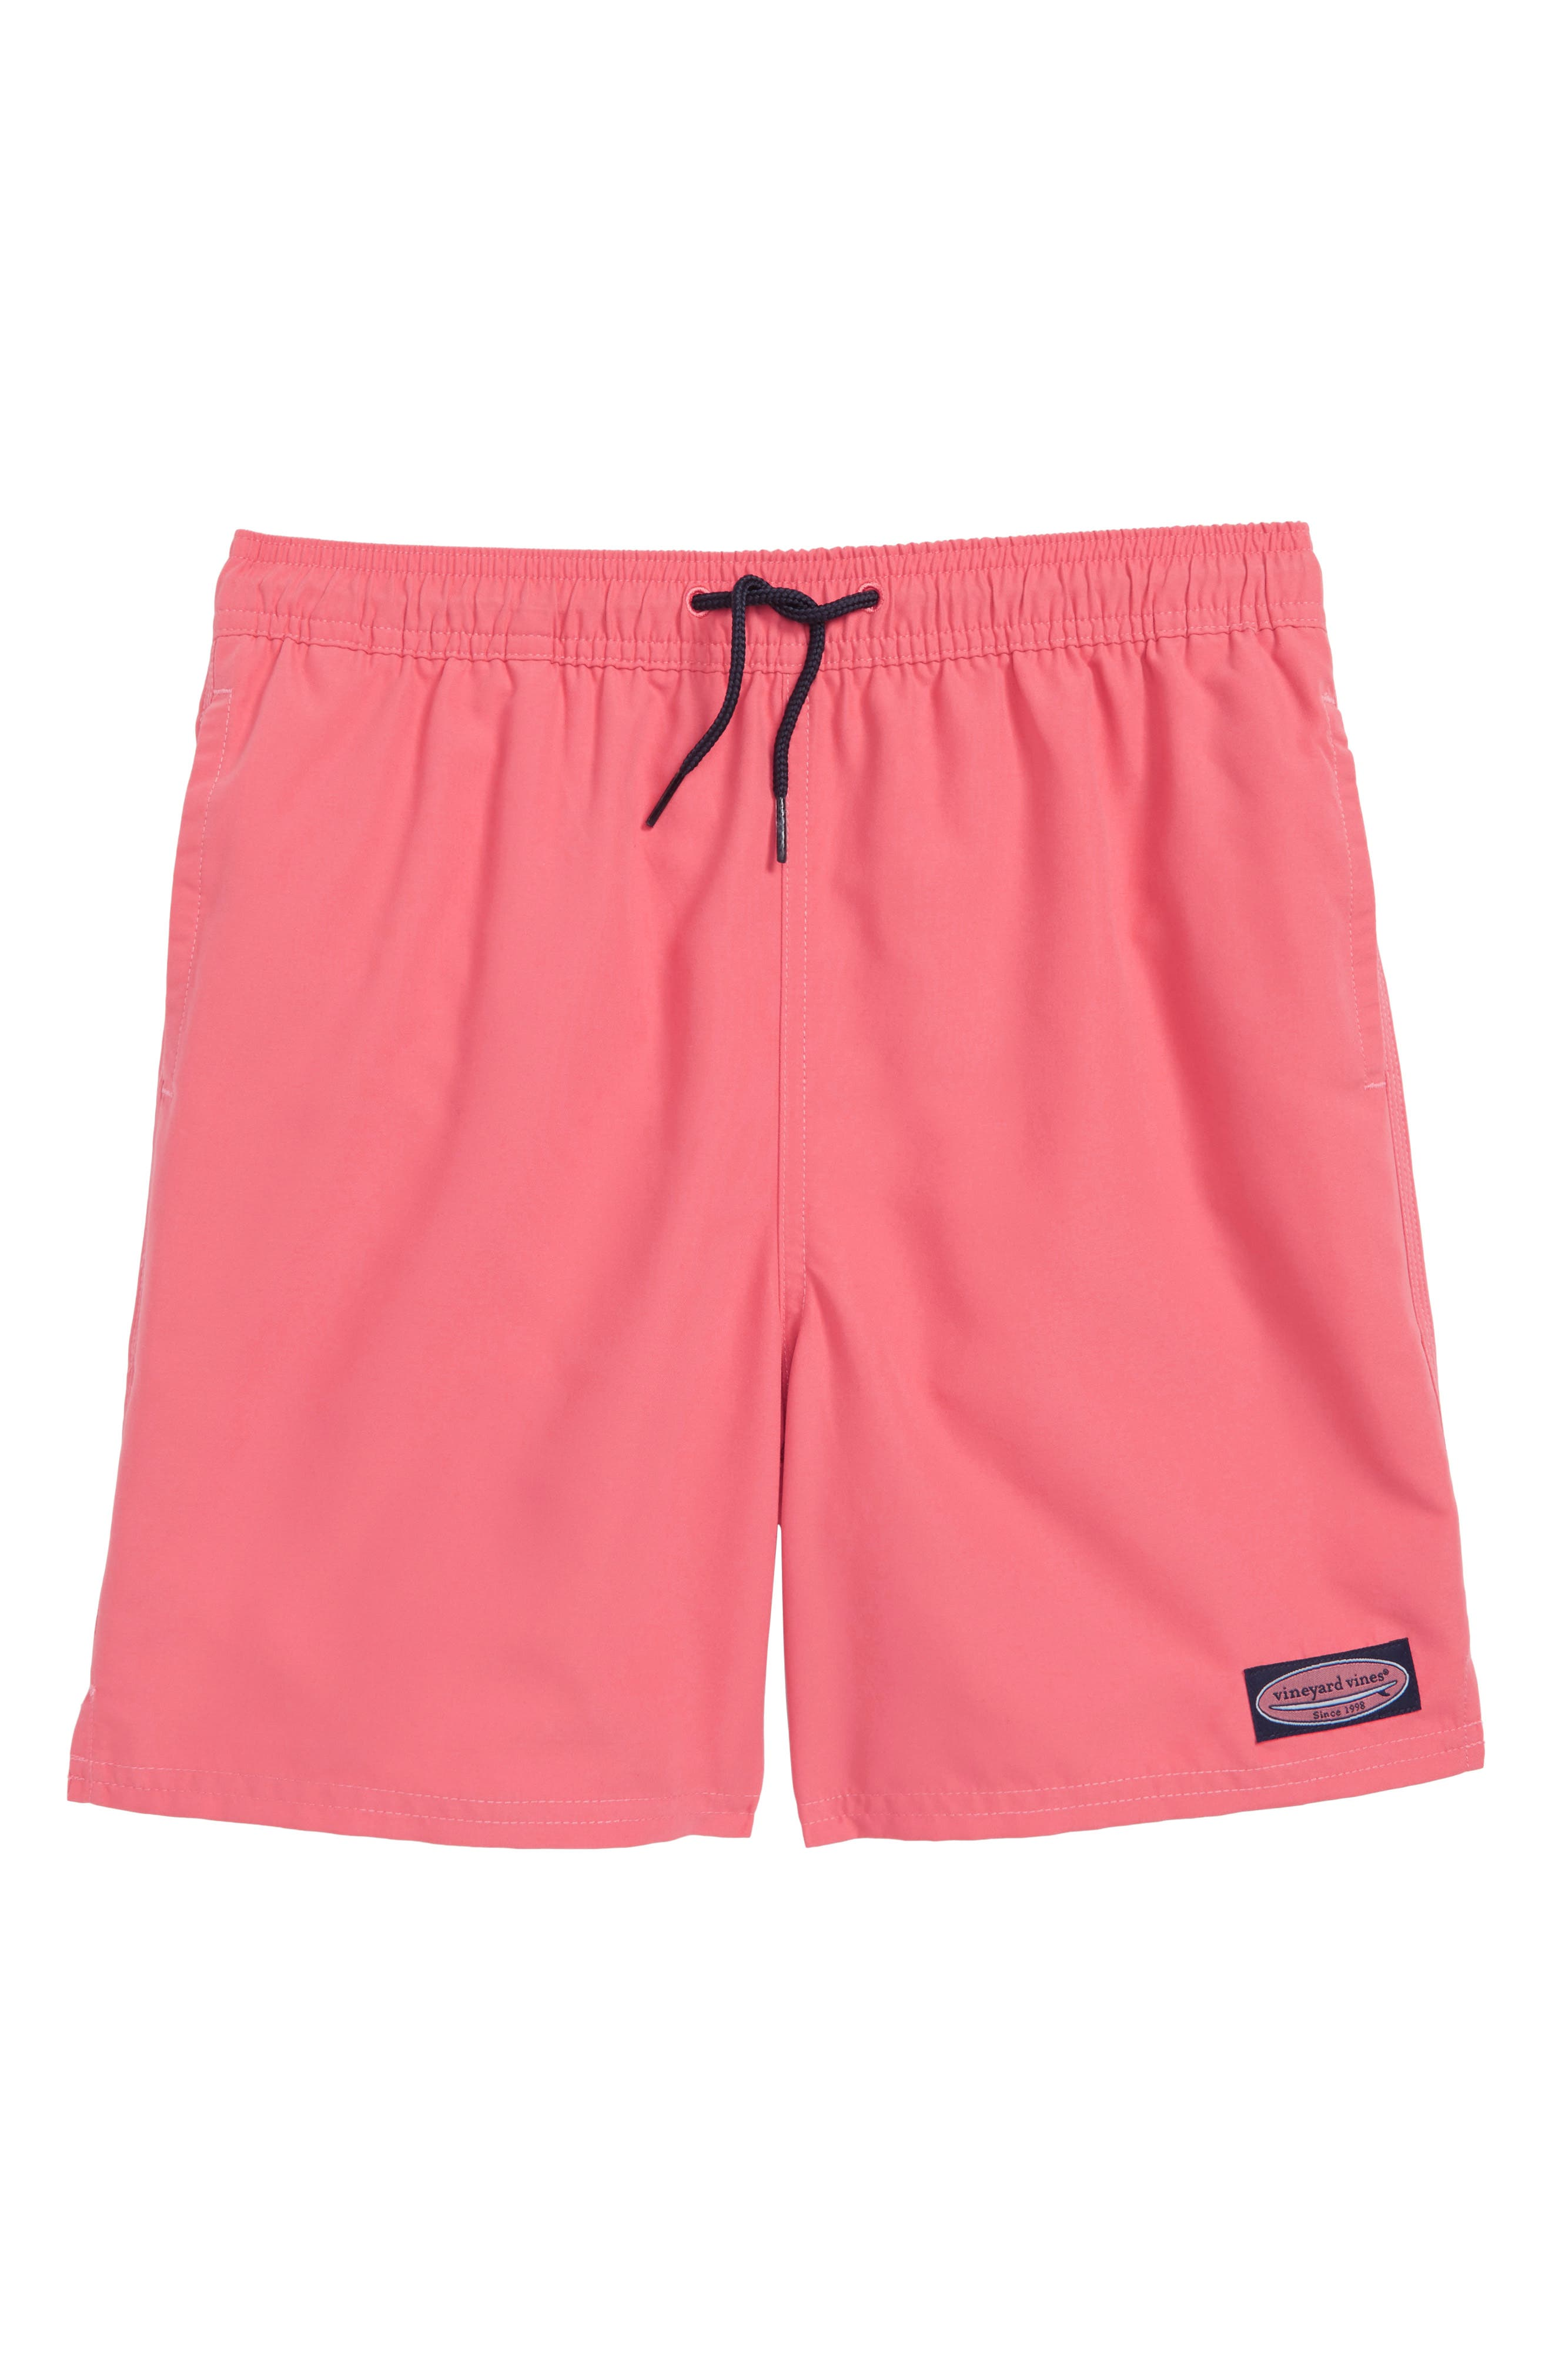 Bungalow Board Shorts,                             Main thumbnail 1, color,                             LOBSTER REEF